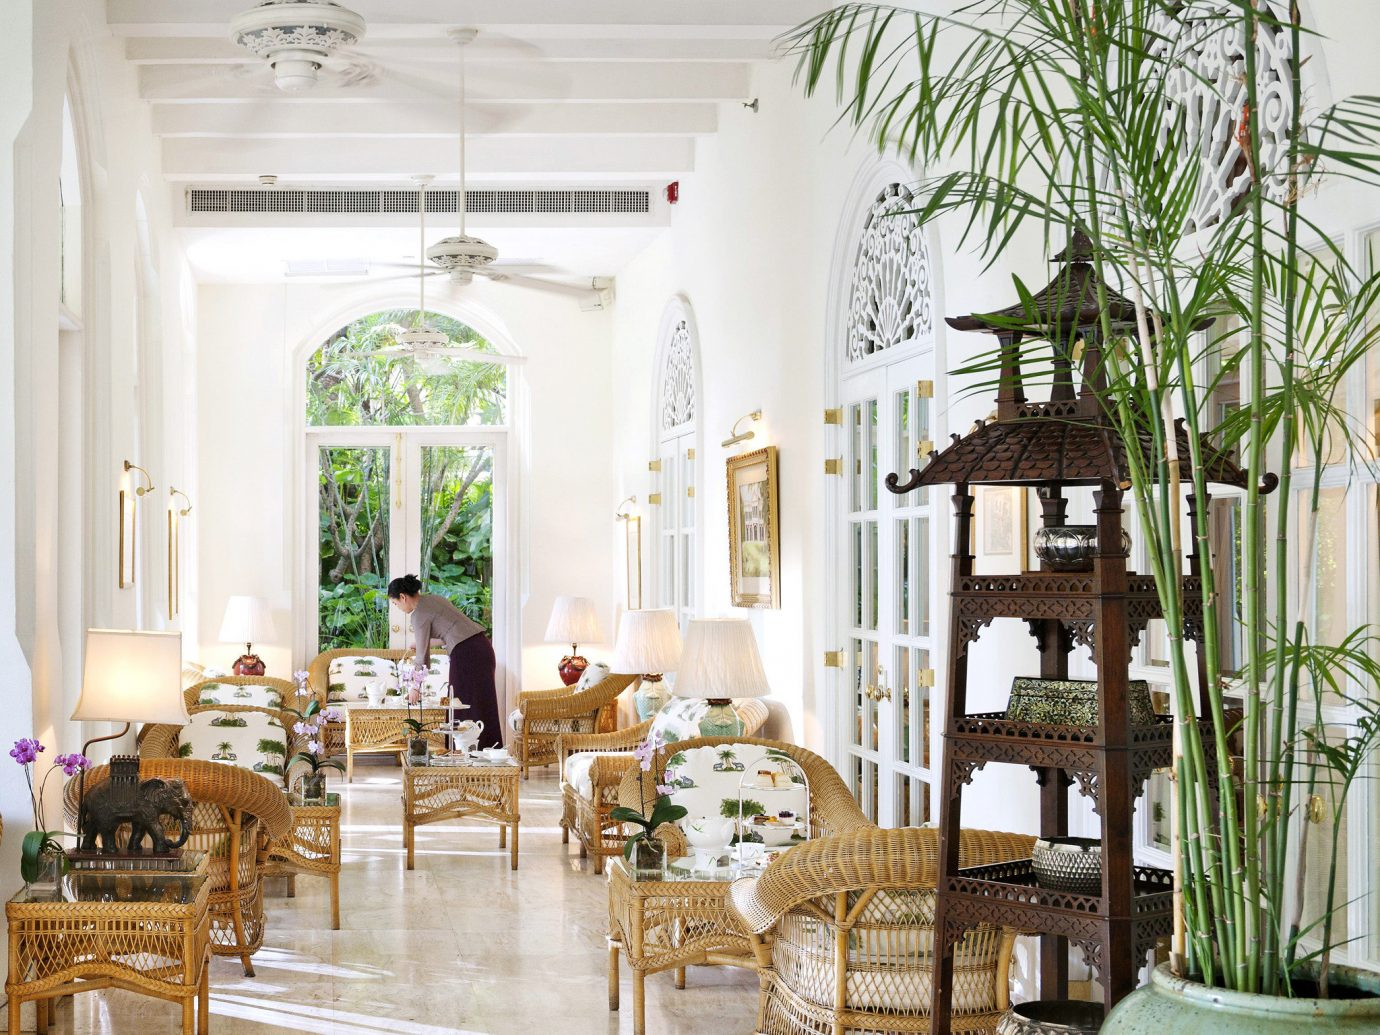 City Cultural Drink Eat Elegant Hotels Lounge Terrace Waterfront indoor dining room room property estate window plant Lobby home interior design floristry living room mansion Courtyard Design restaurant Dining condominium furniture decorated dining table several